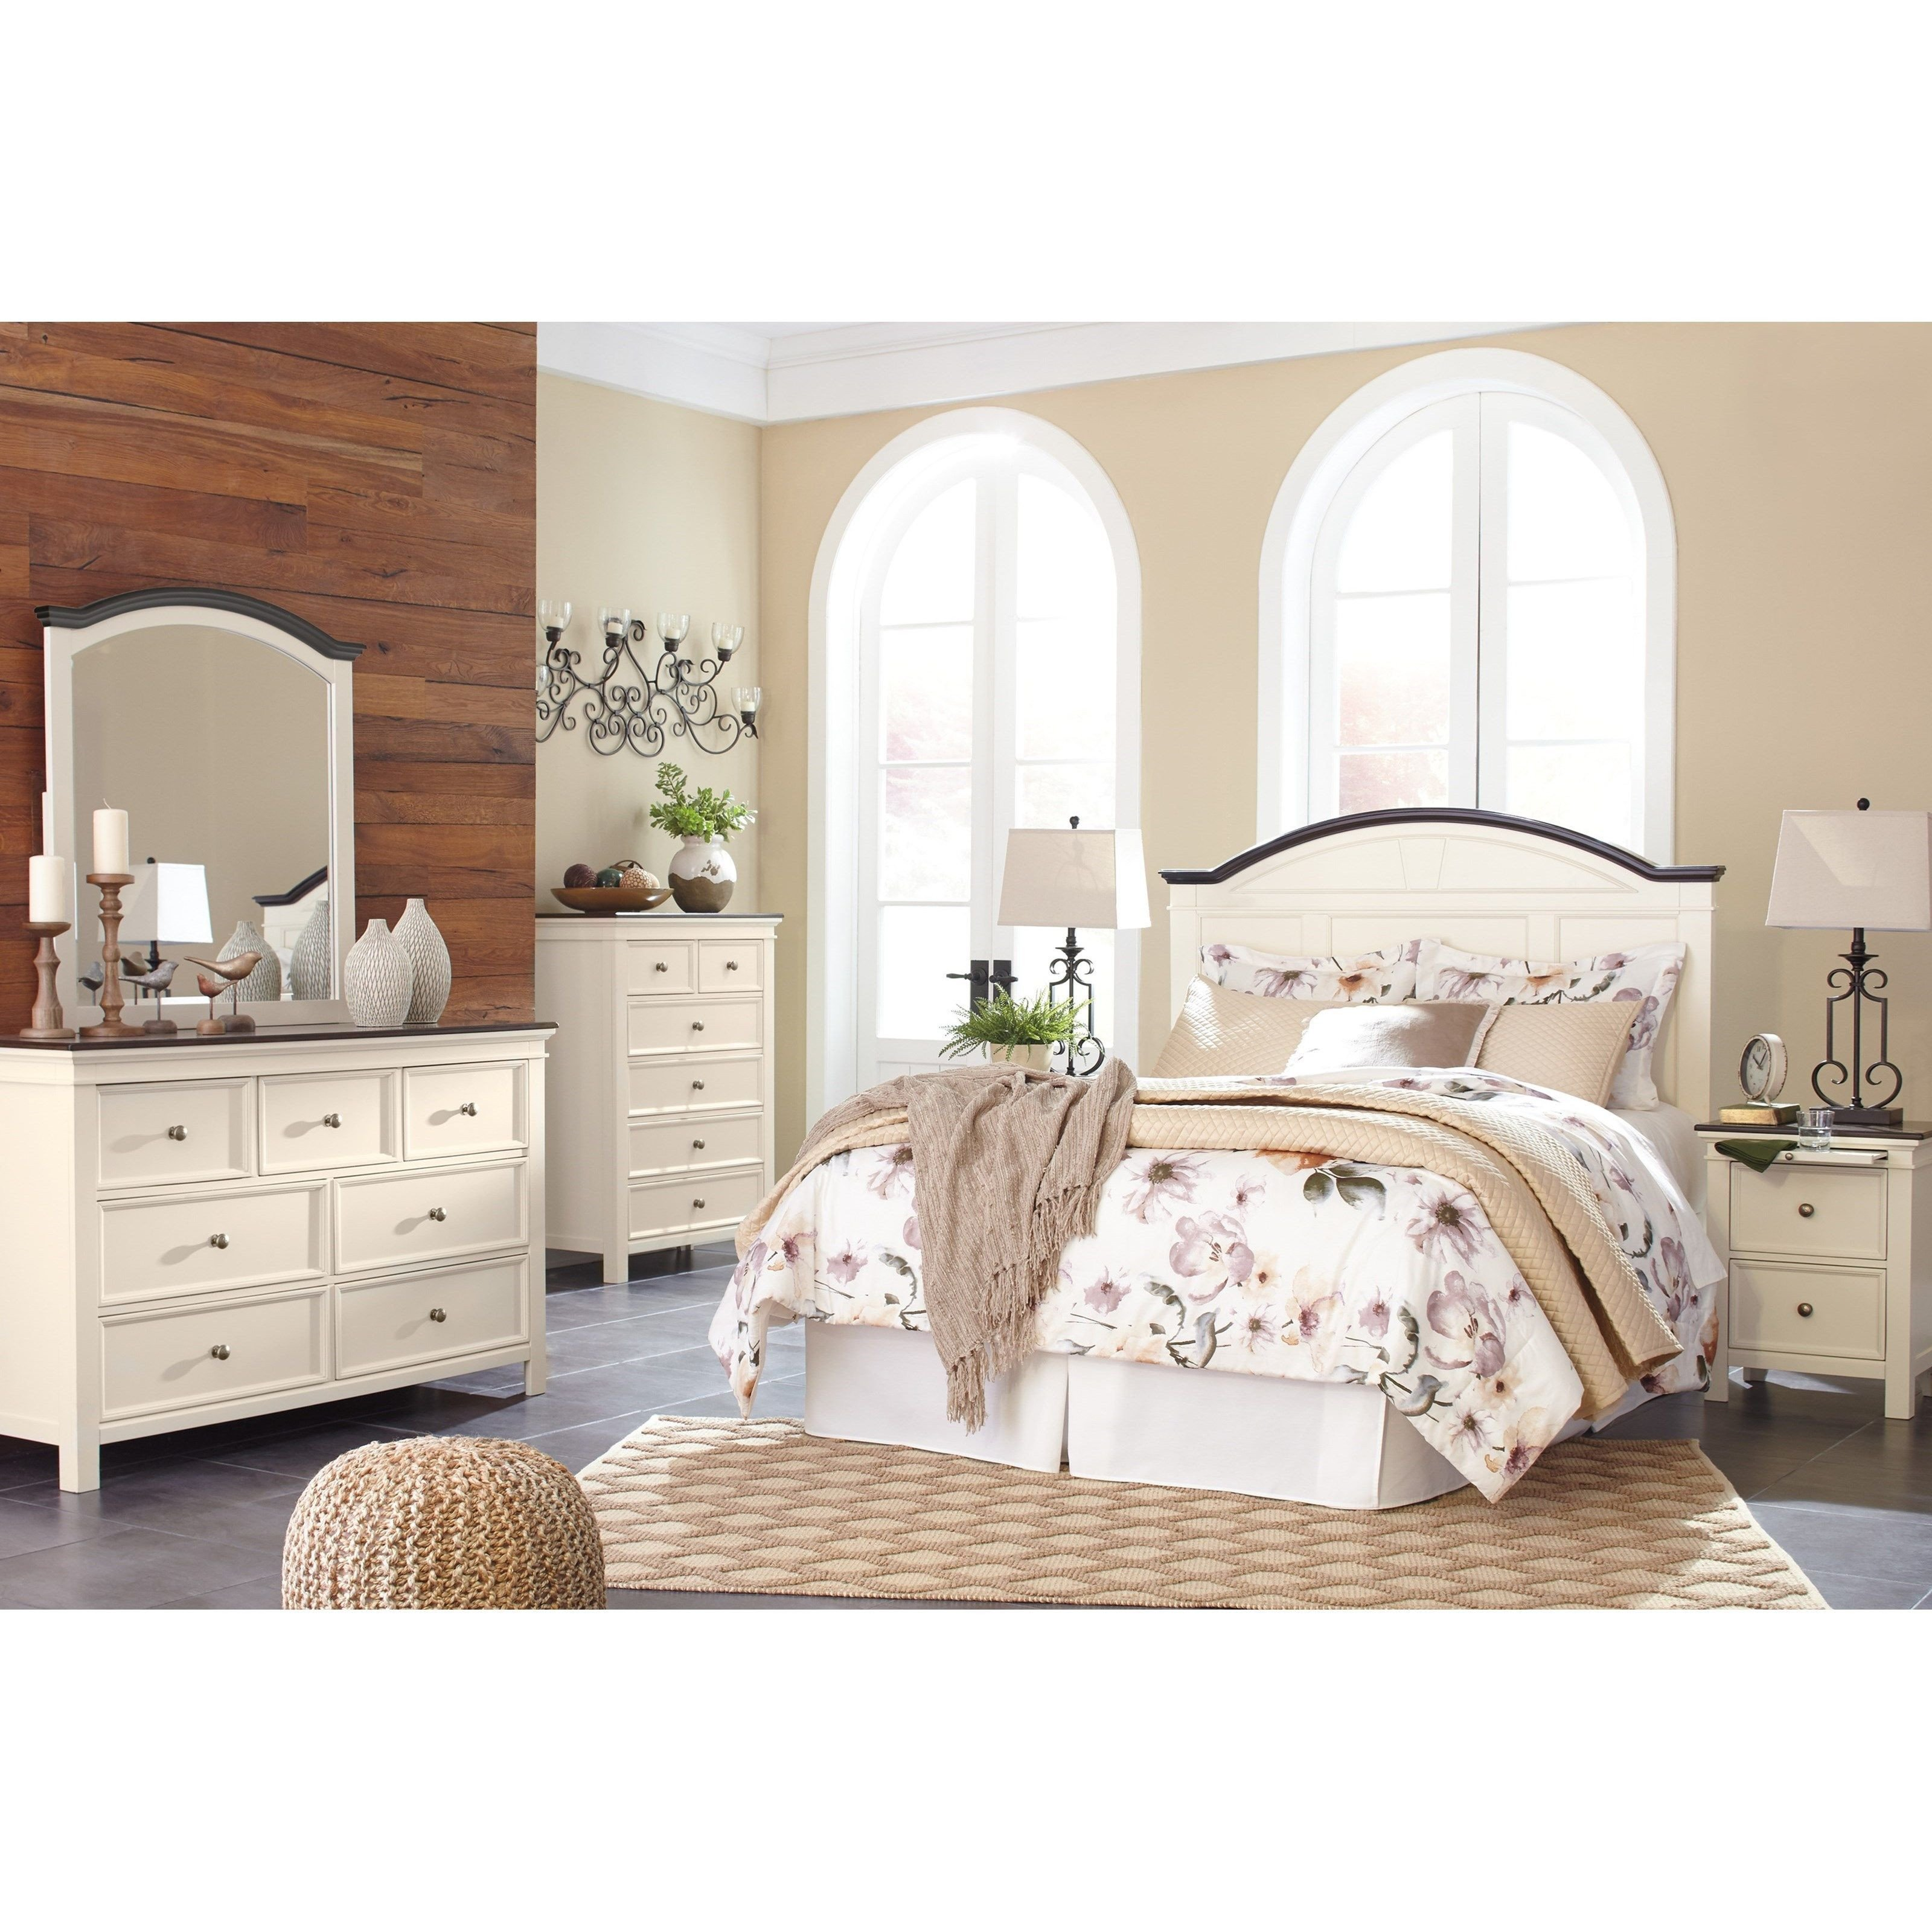 Ashley White Bedroom Set Beautiful Woodanville Queen Bedroom Group by Signature Design by